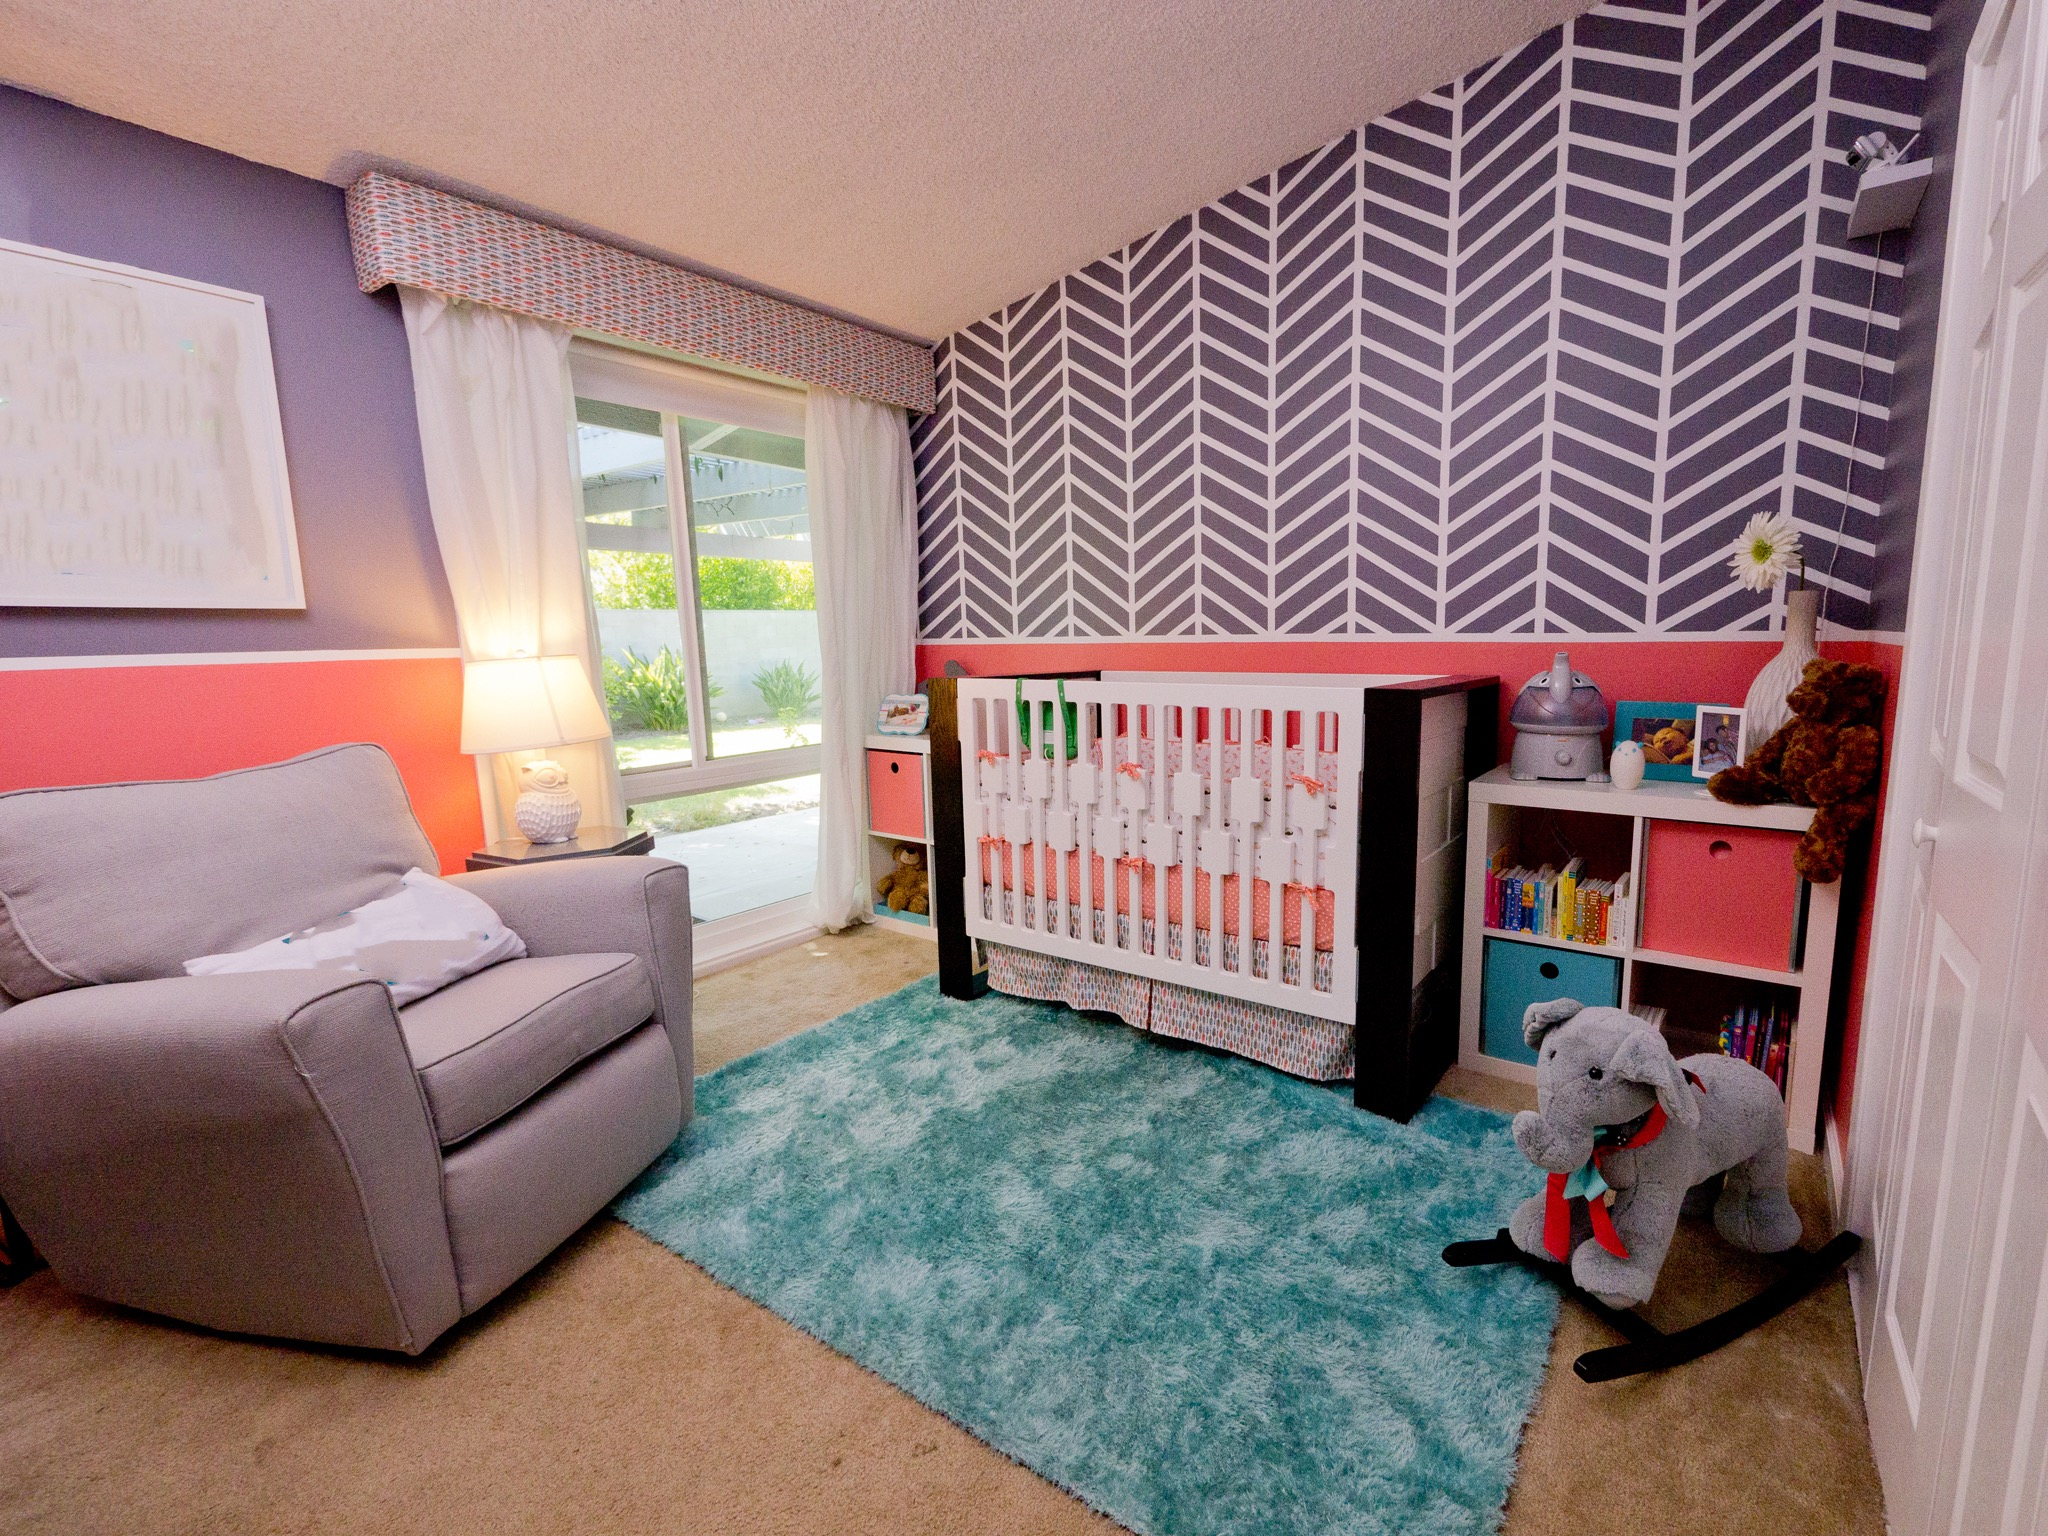 Featured Image of 33 Baby Room Interior Decor And Design Ideas